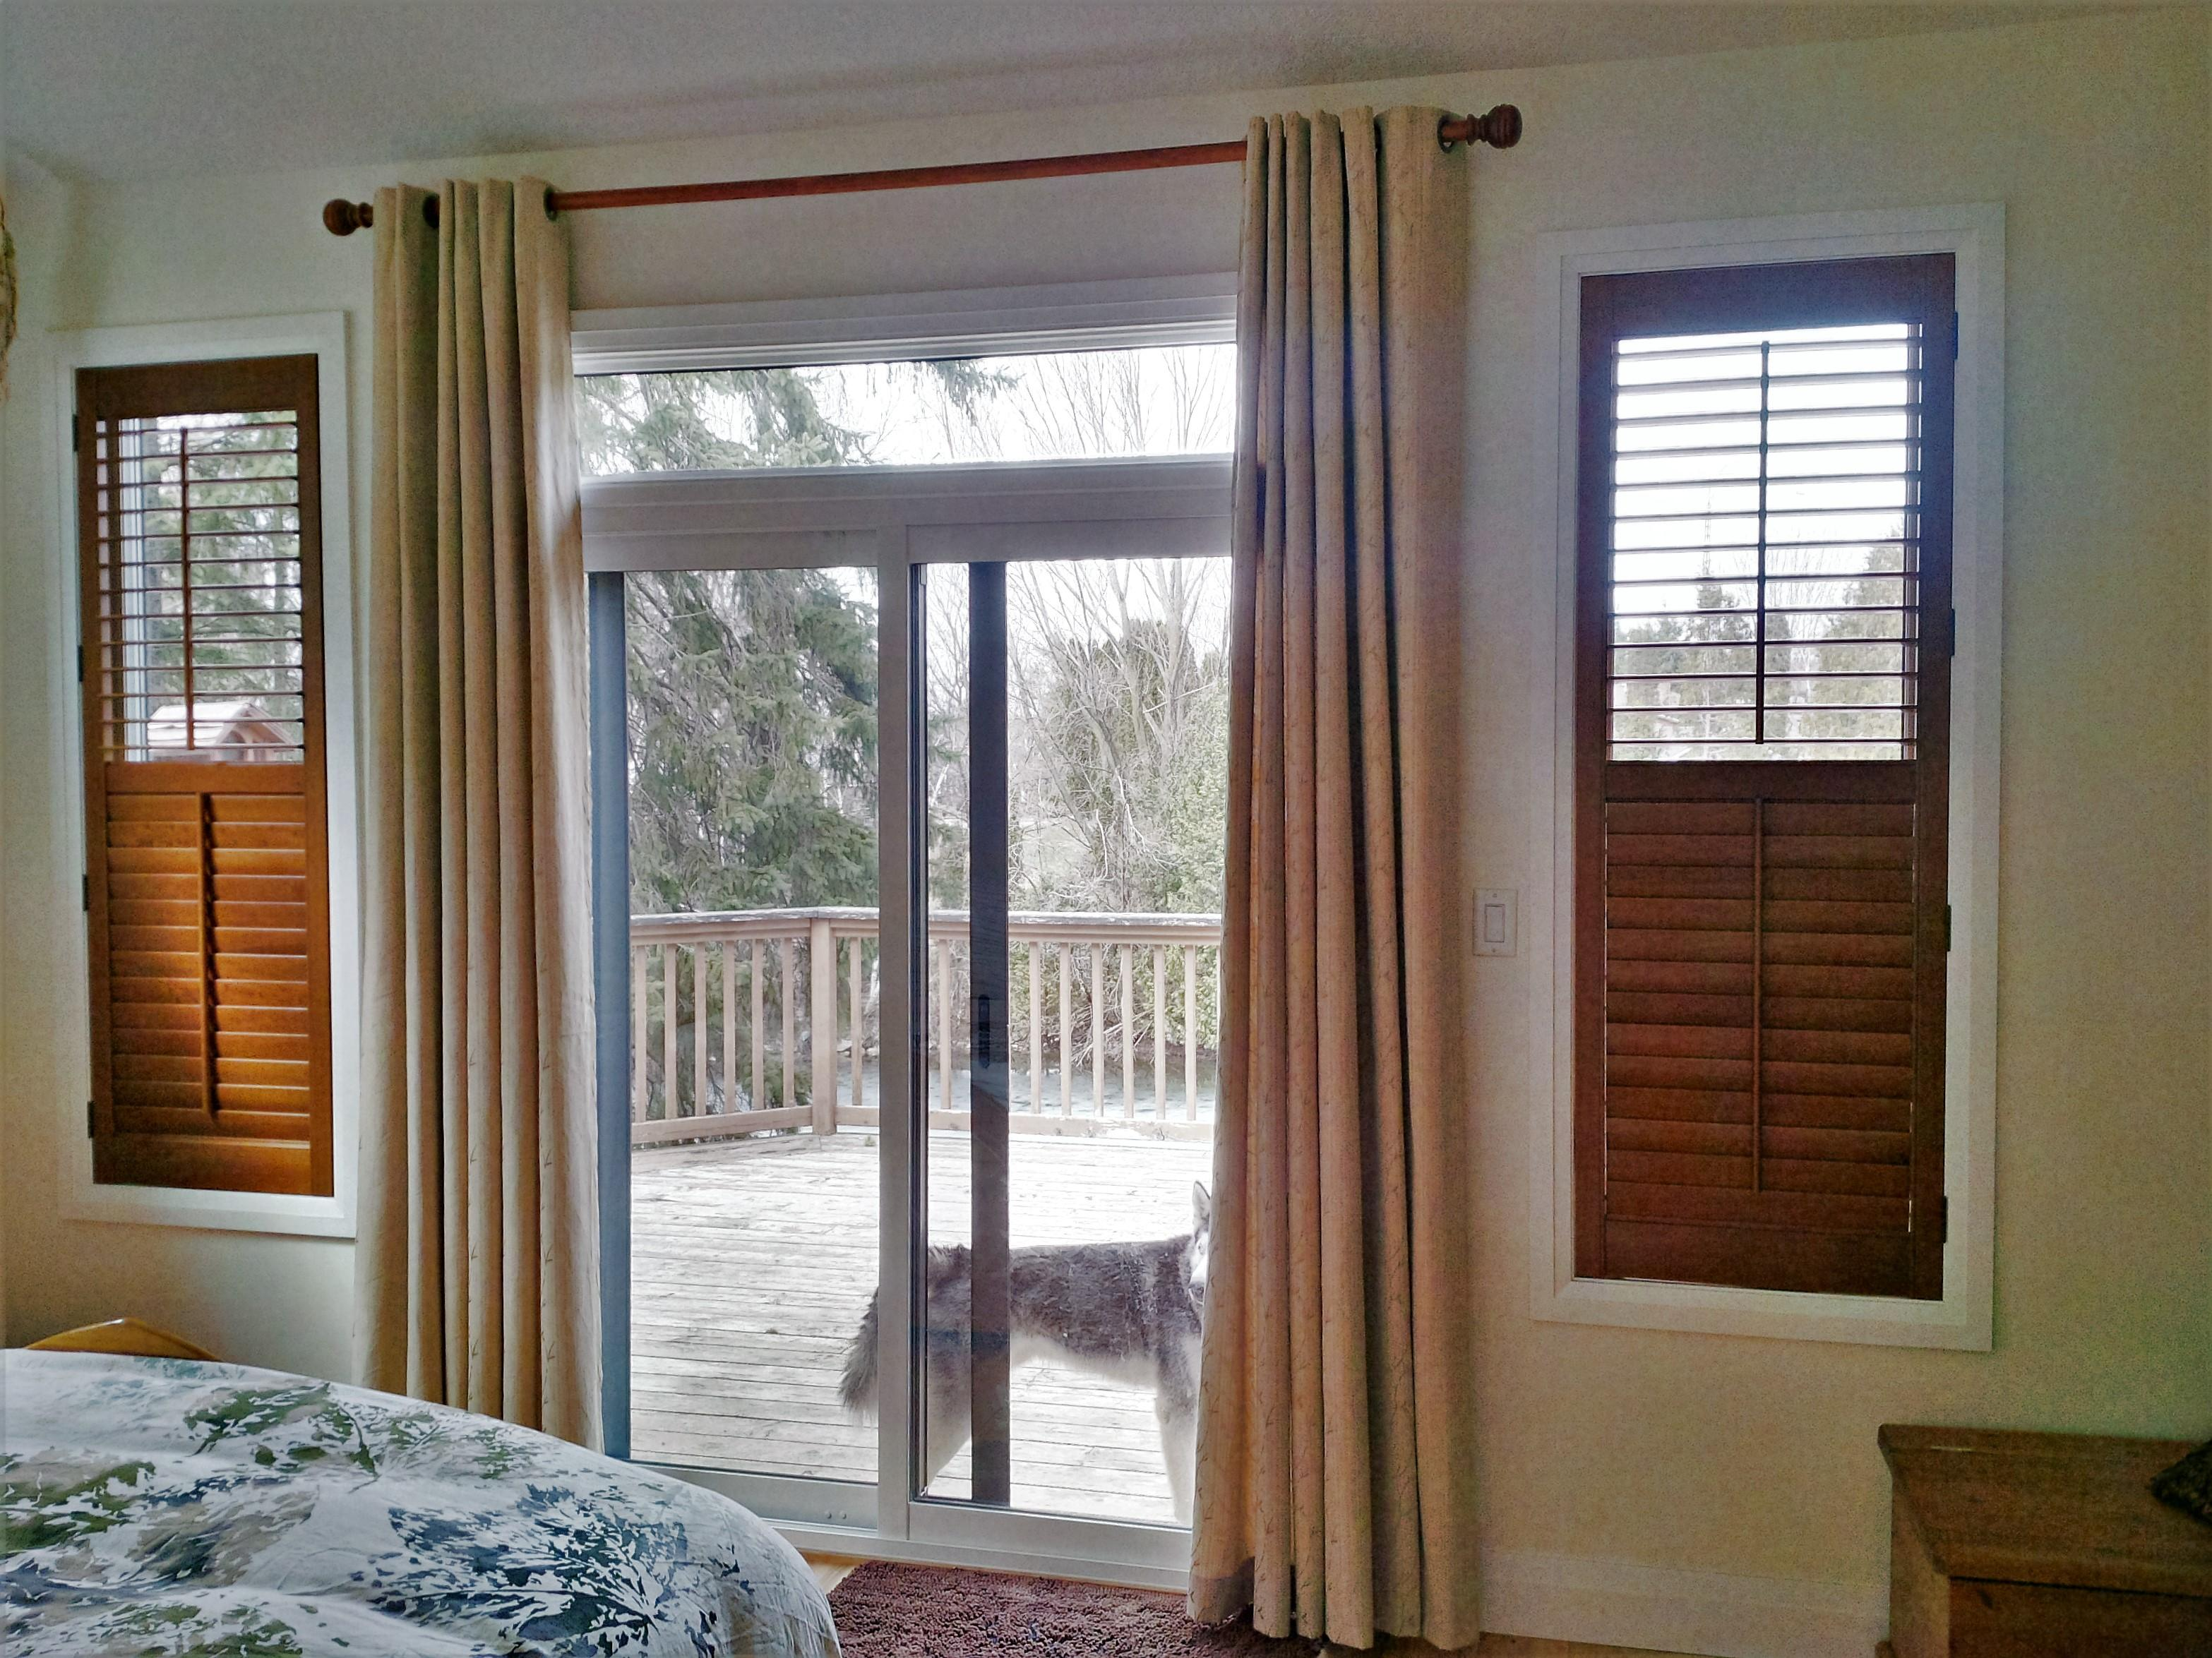 Budget Blinds à Waterloo: The mission for this master bedroom was to bring the outside in. We used solid wood shutters stained to match the wood drapery rod up above. The drapery also added some needed warmth and softness to the space.